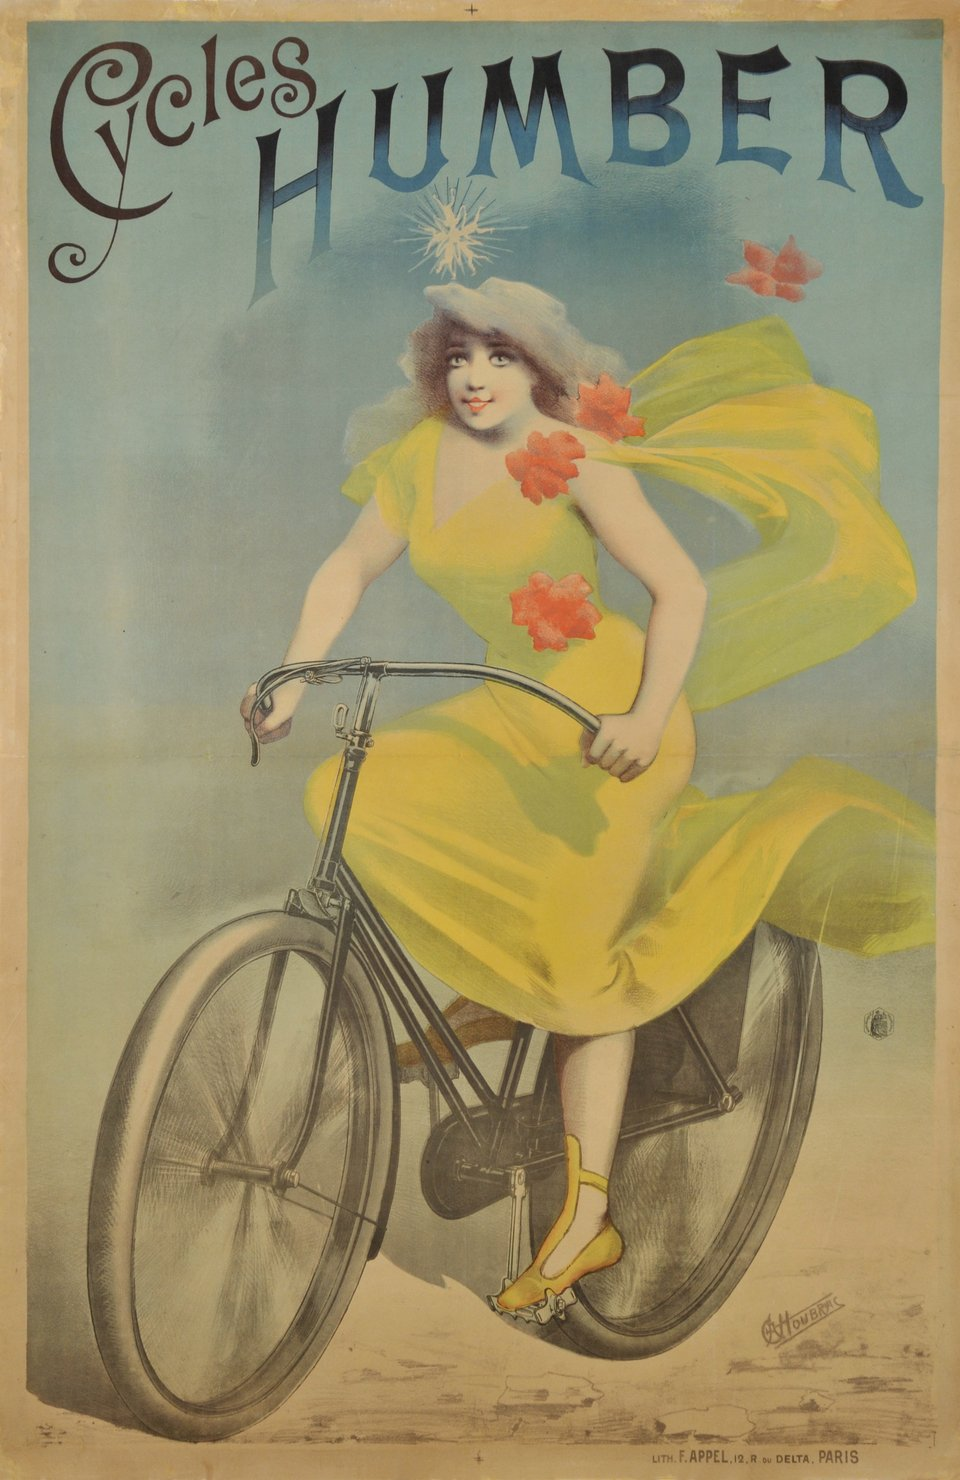 Cycles Humber – Vintage poster – Alfred CHOUBRAC – 1895